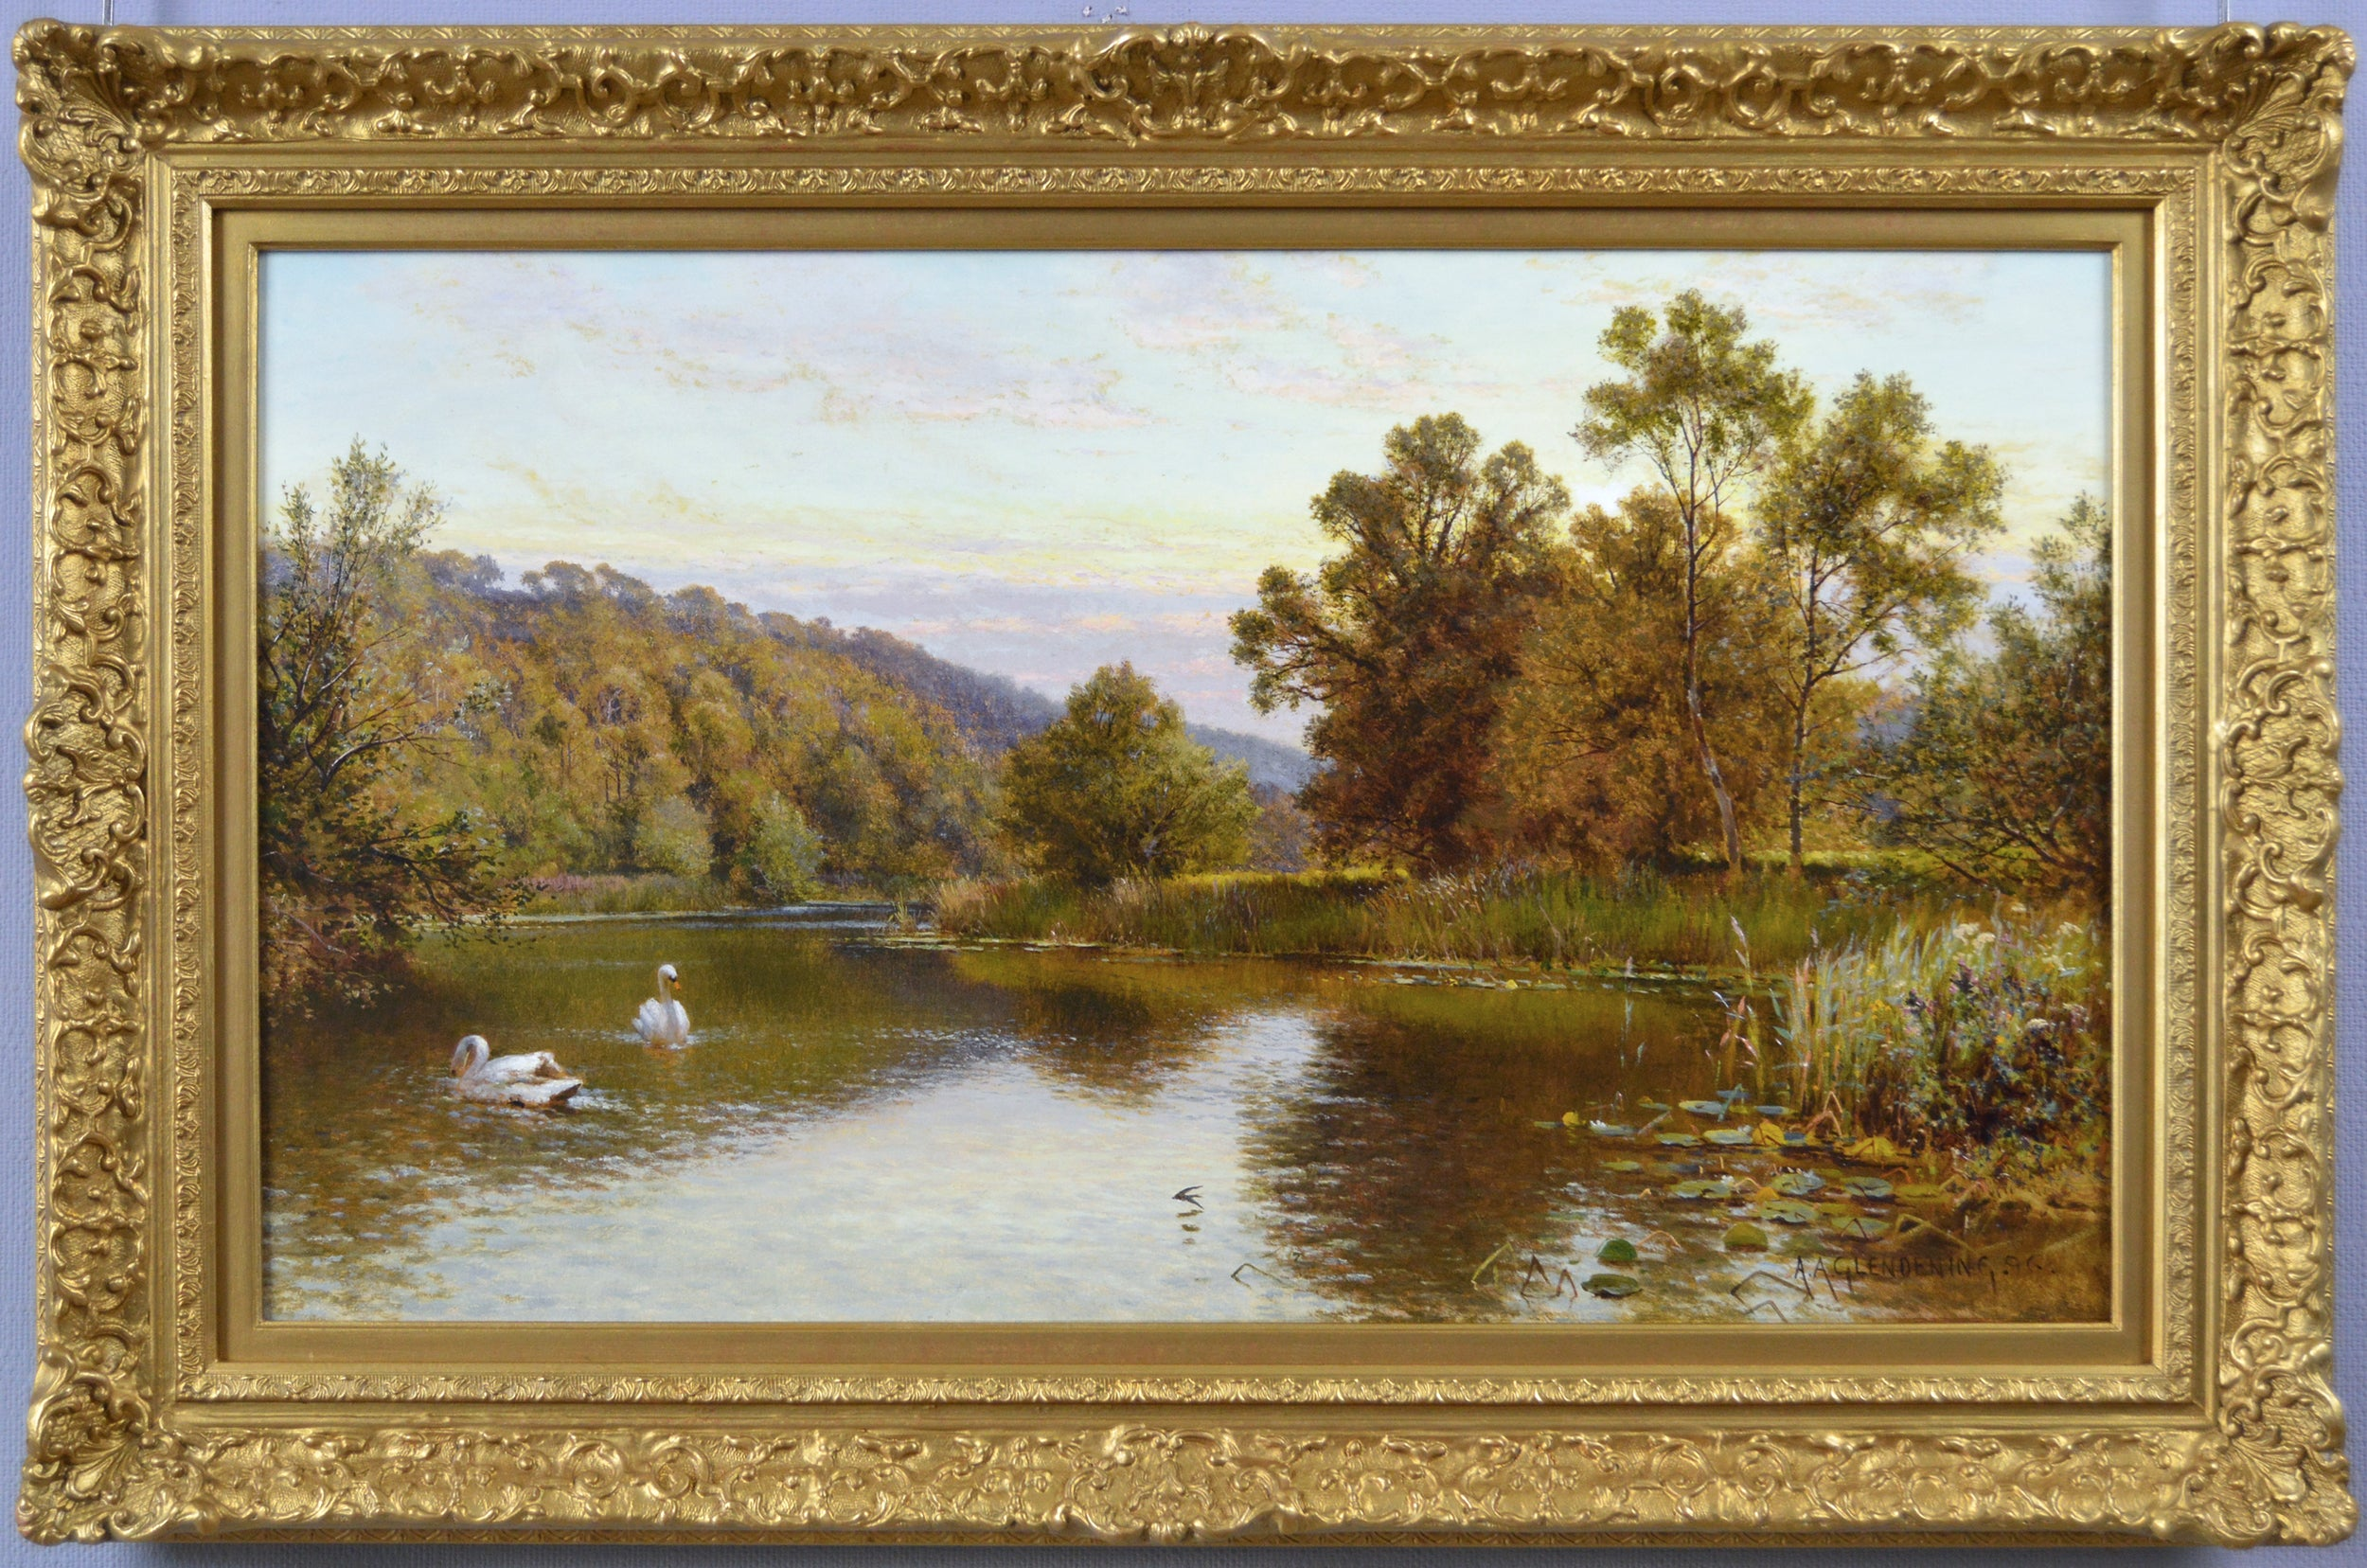 19th Century landscape oil painting of swans on a river